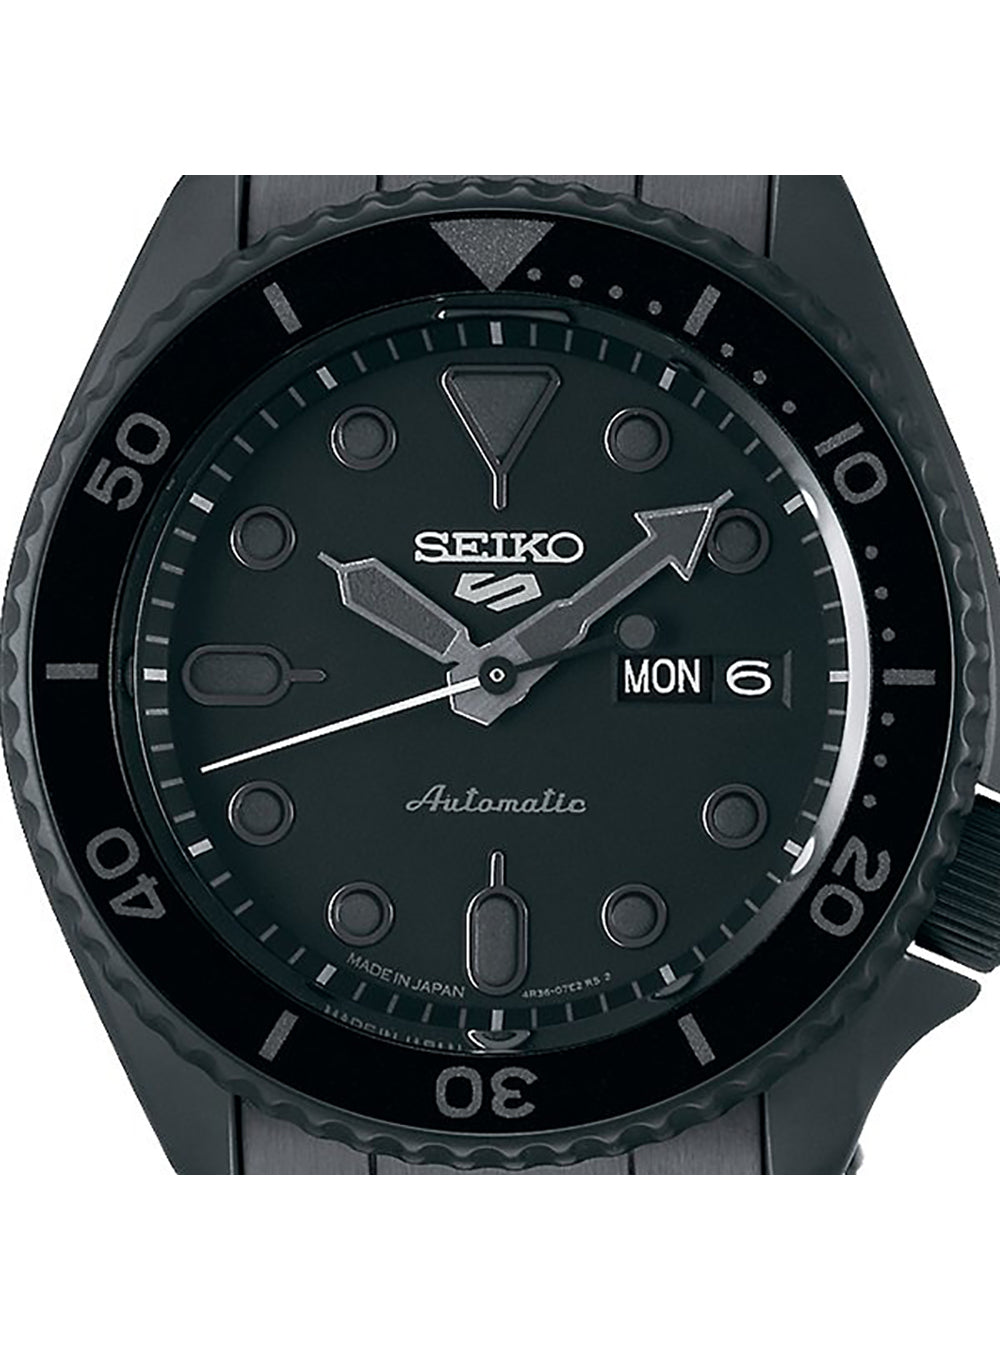 SEIKO 5 SPORTS STREET STYLE SBSA075 MADE IN JAPAN JDM